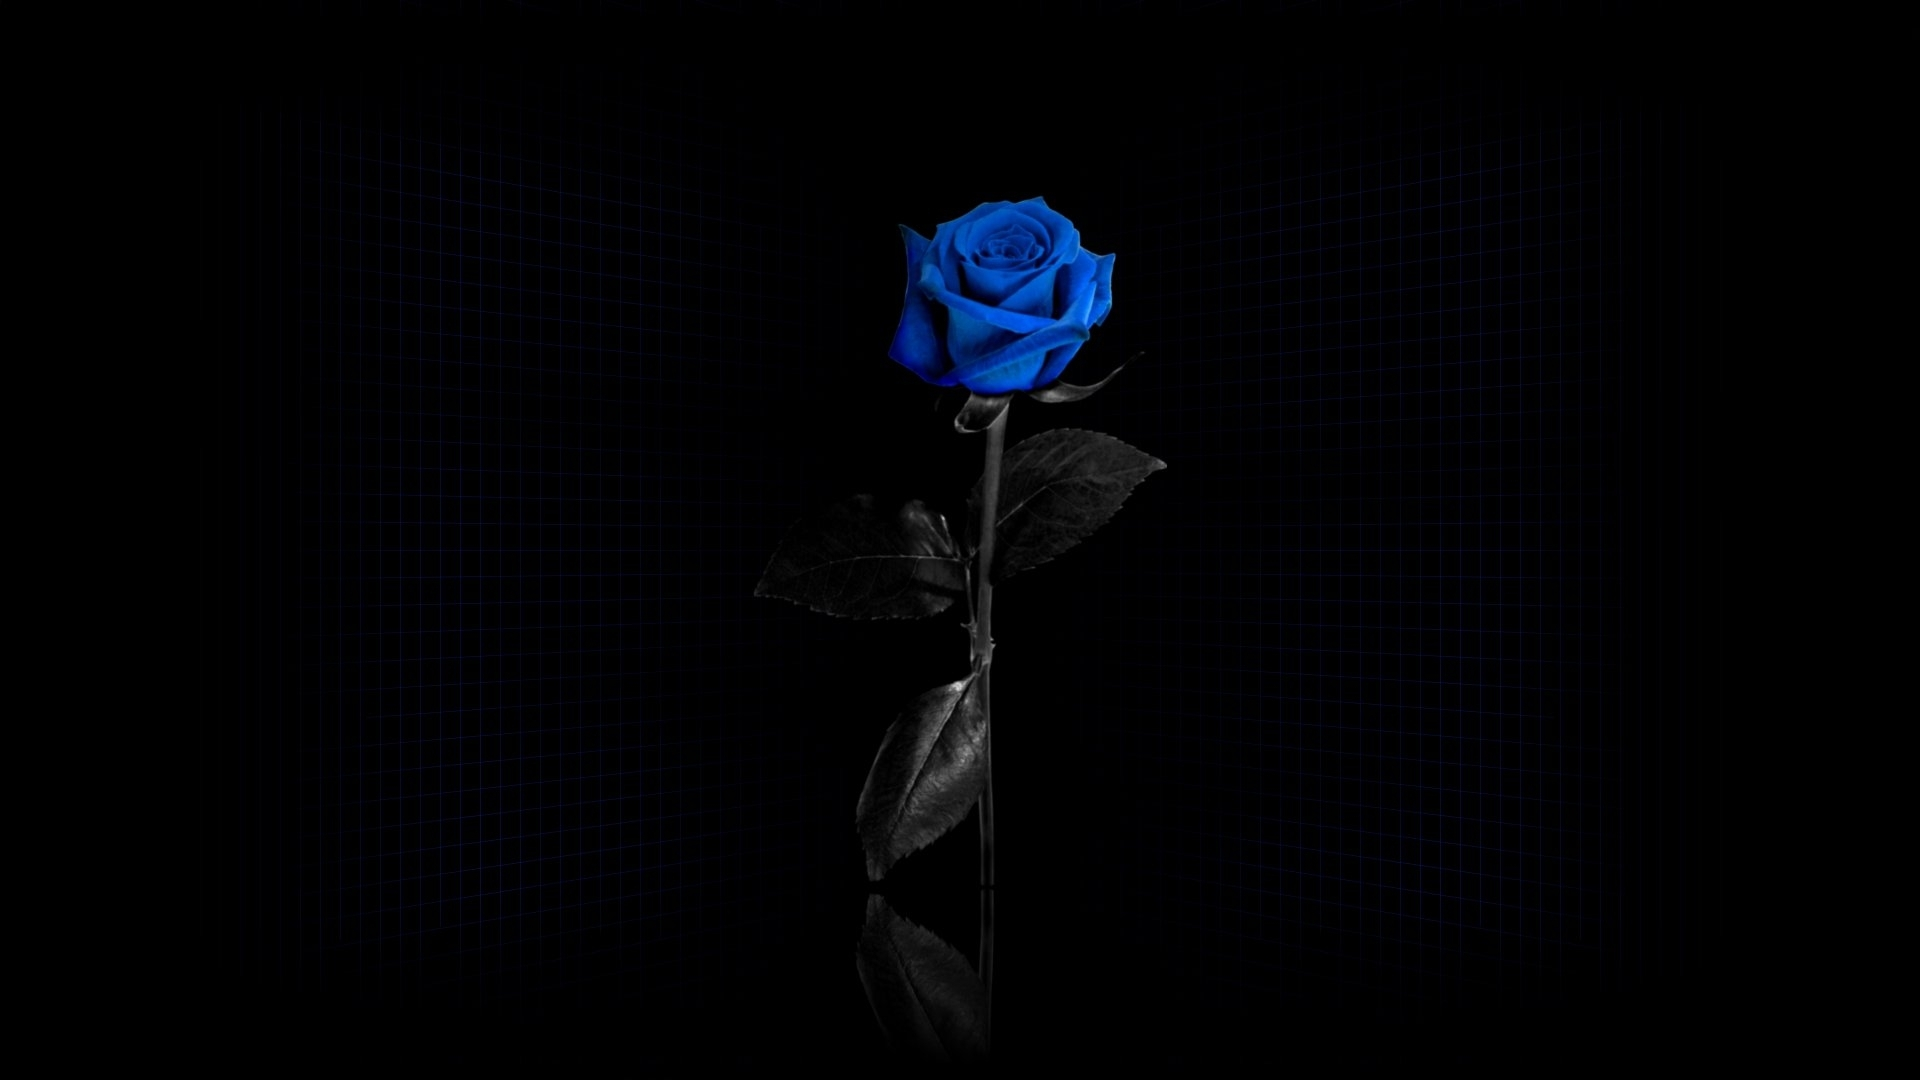 blue rose on black background wallpapers and images   wallpapers 1920x1080